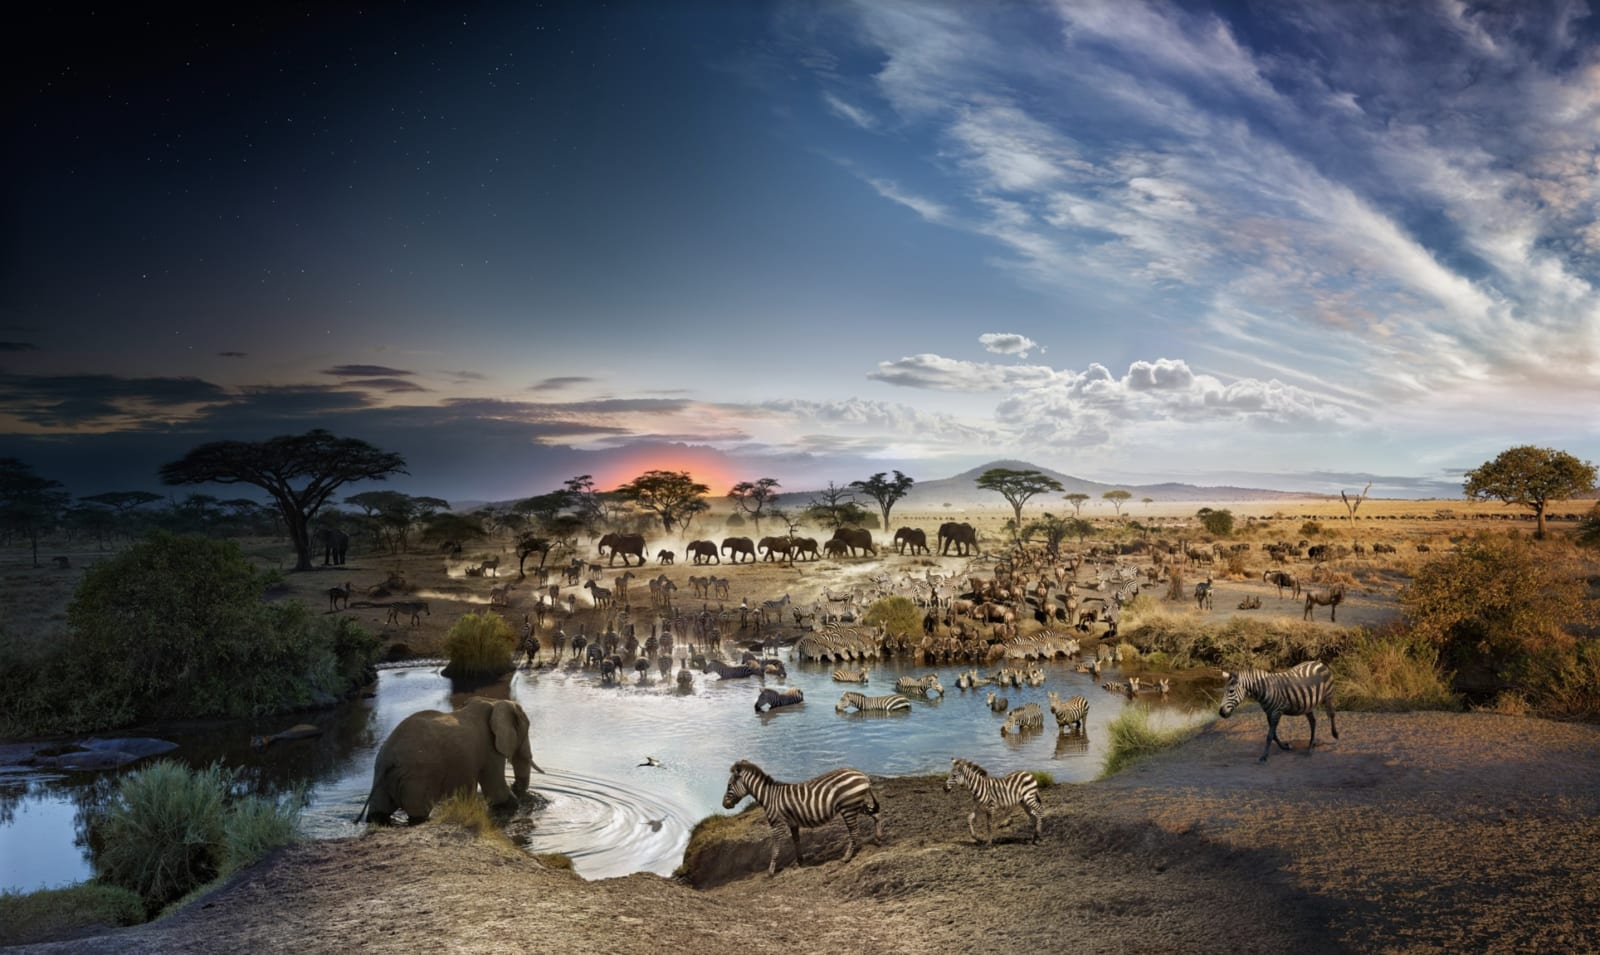 Stephen Wilkes Serengeti National Park, Tanzania, Day to Night, 2015 Signed on label verso 24 x 40 inch archival pigment print Edition of 50 32 x 54 inch archival pigment print Edition of 20 48 x 81 inch archival pigment print Edition of 12